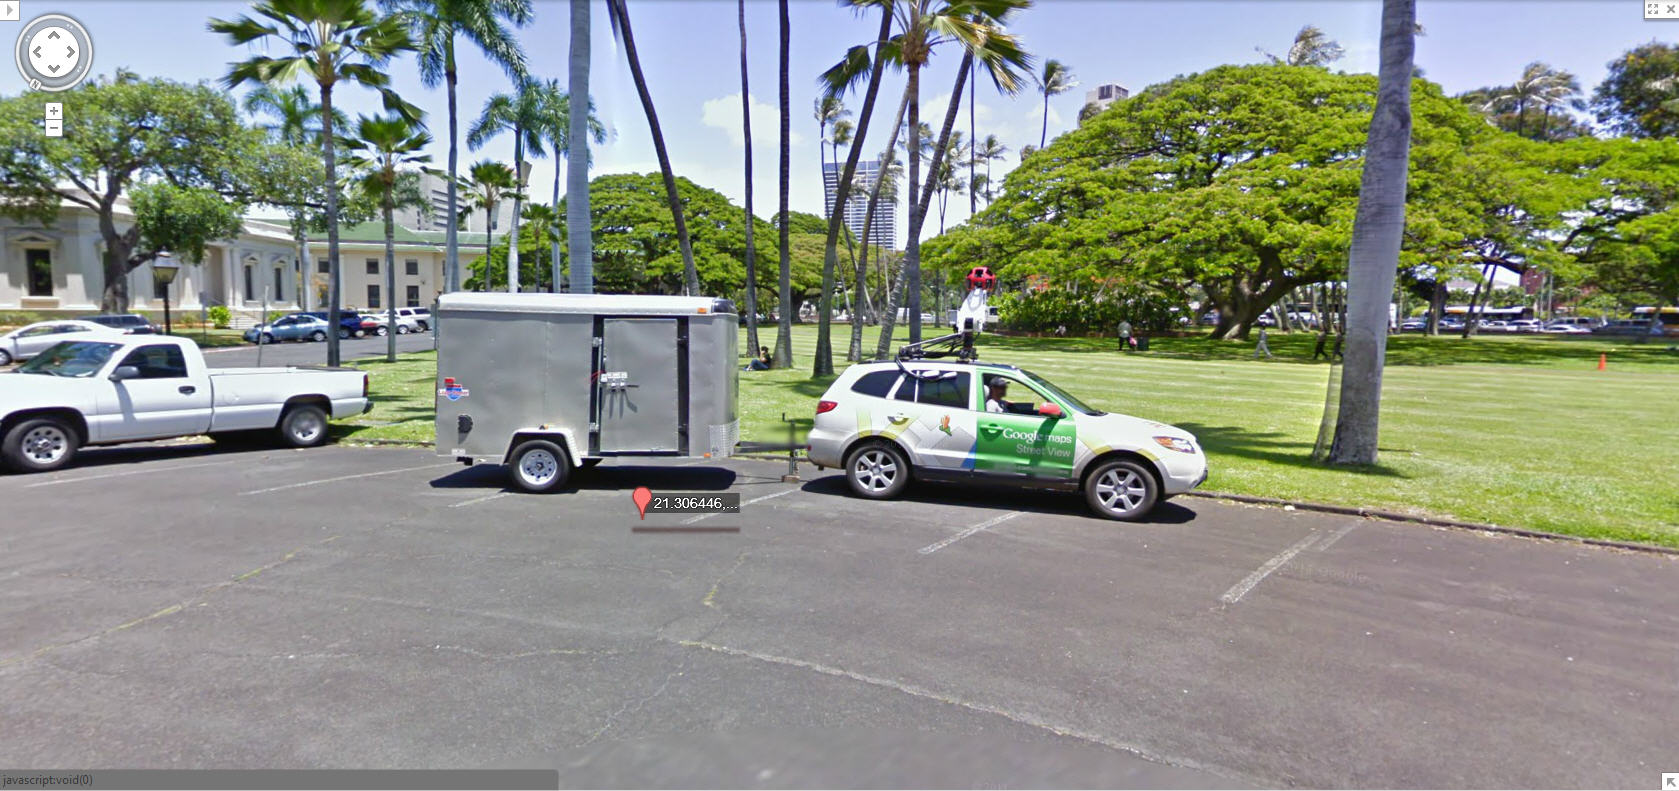 Nice Picture Of The Google Street View Car Trailer And